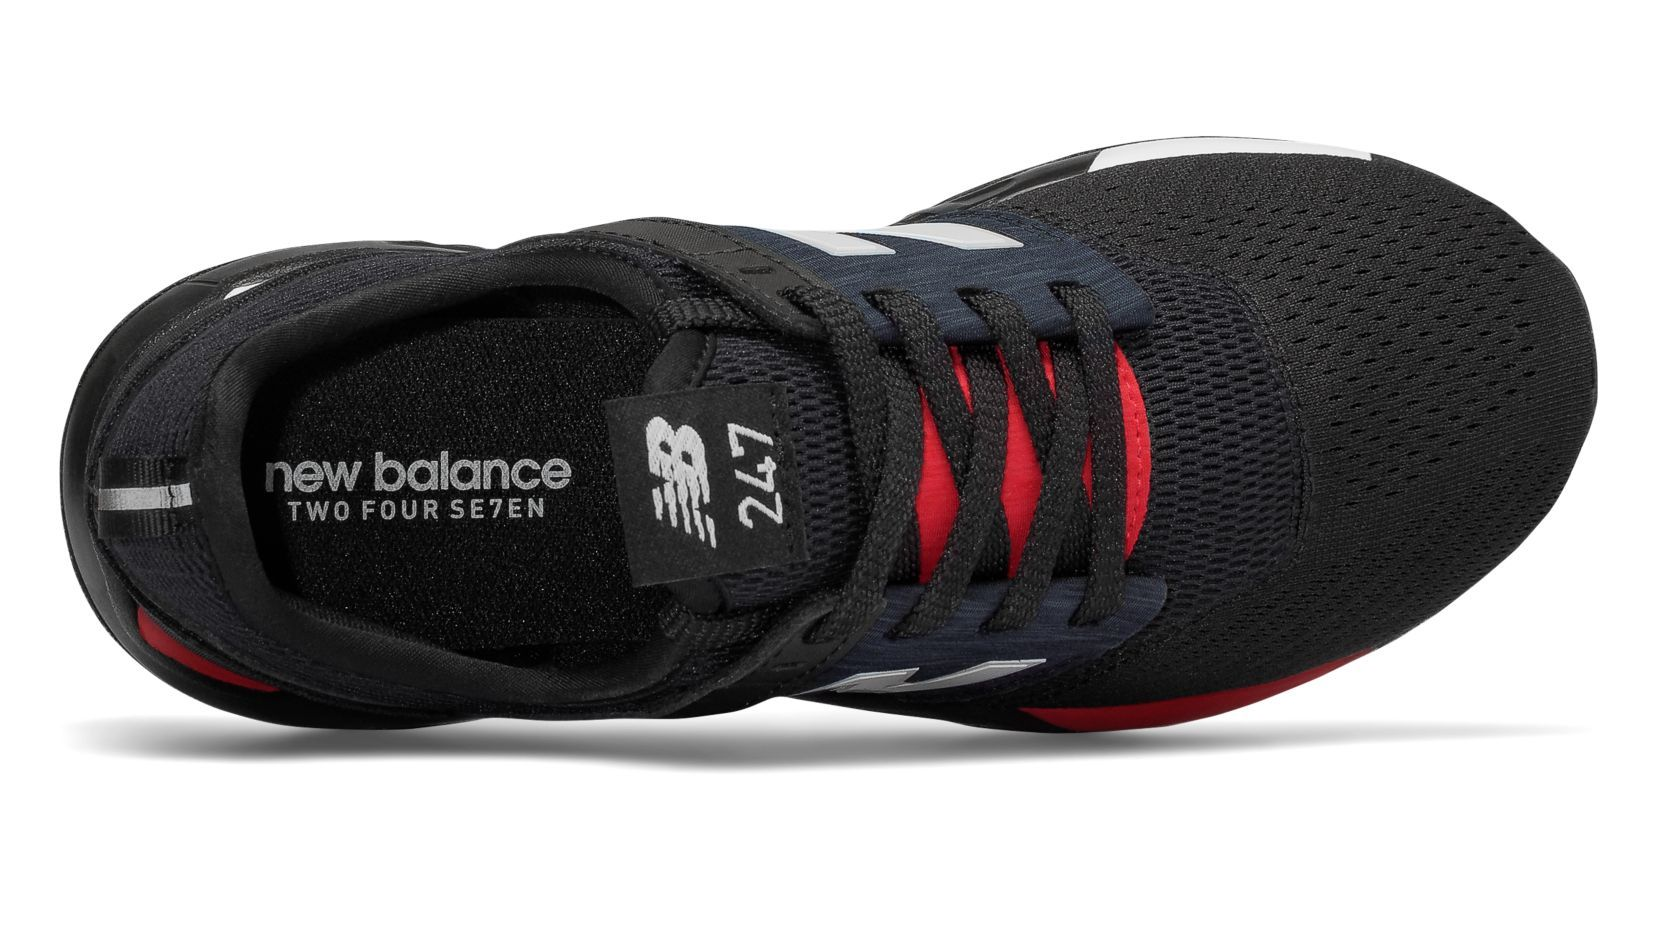 NEW BALANCE JUNIOR CLASSIC 247 BLACK SHOES